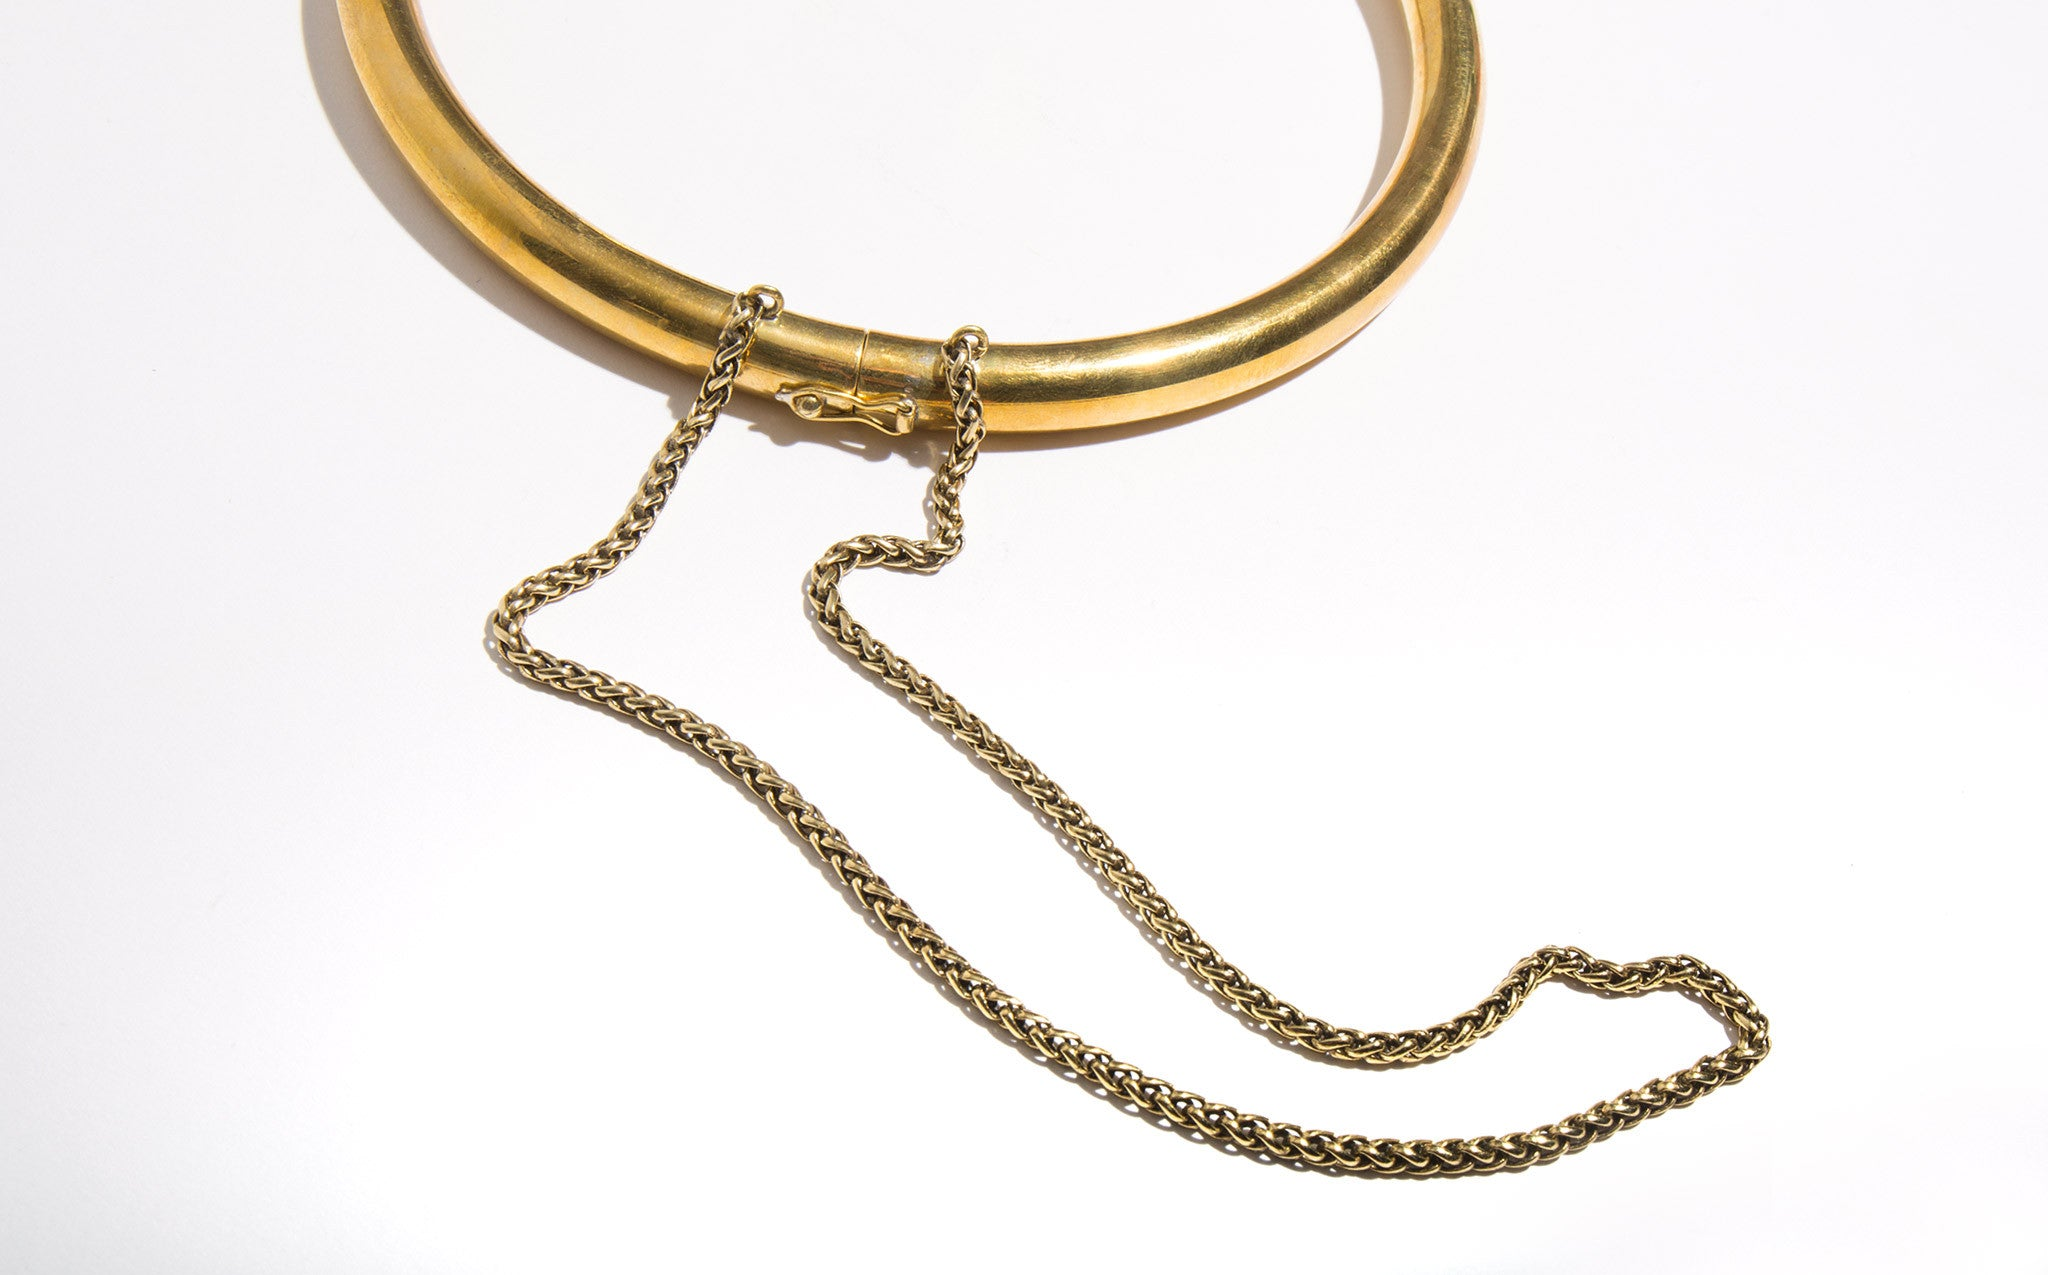 A Détacher Brass Choker